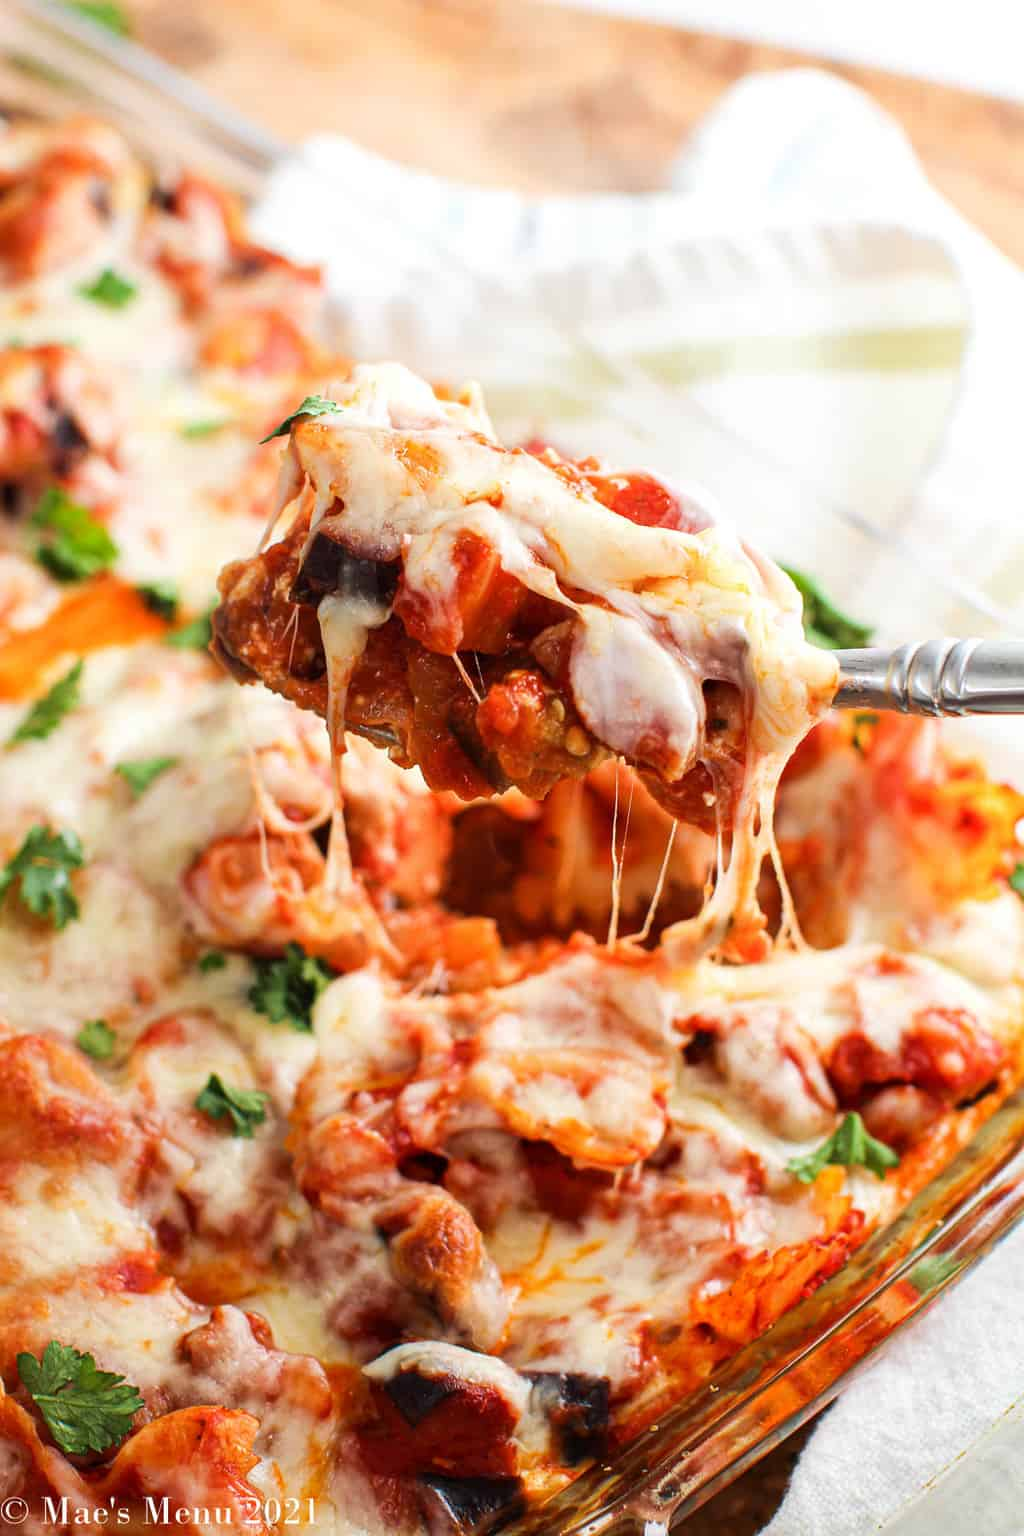 A large spoonful of the italian sausage casserole with strings of cheese hanging down